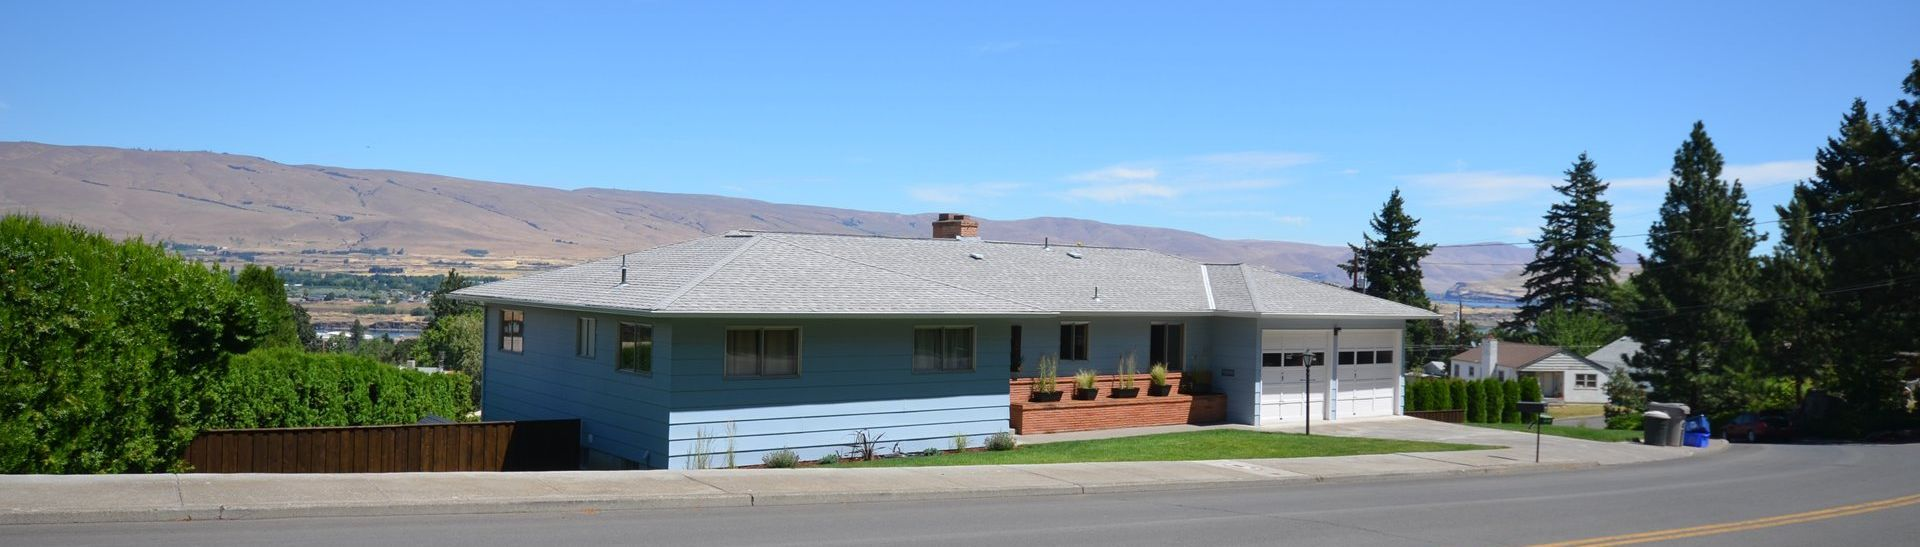 1707 Lincoln Way The Dalles Price Drop